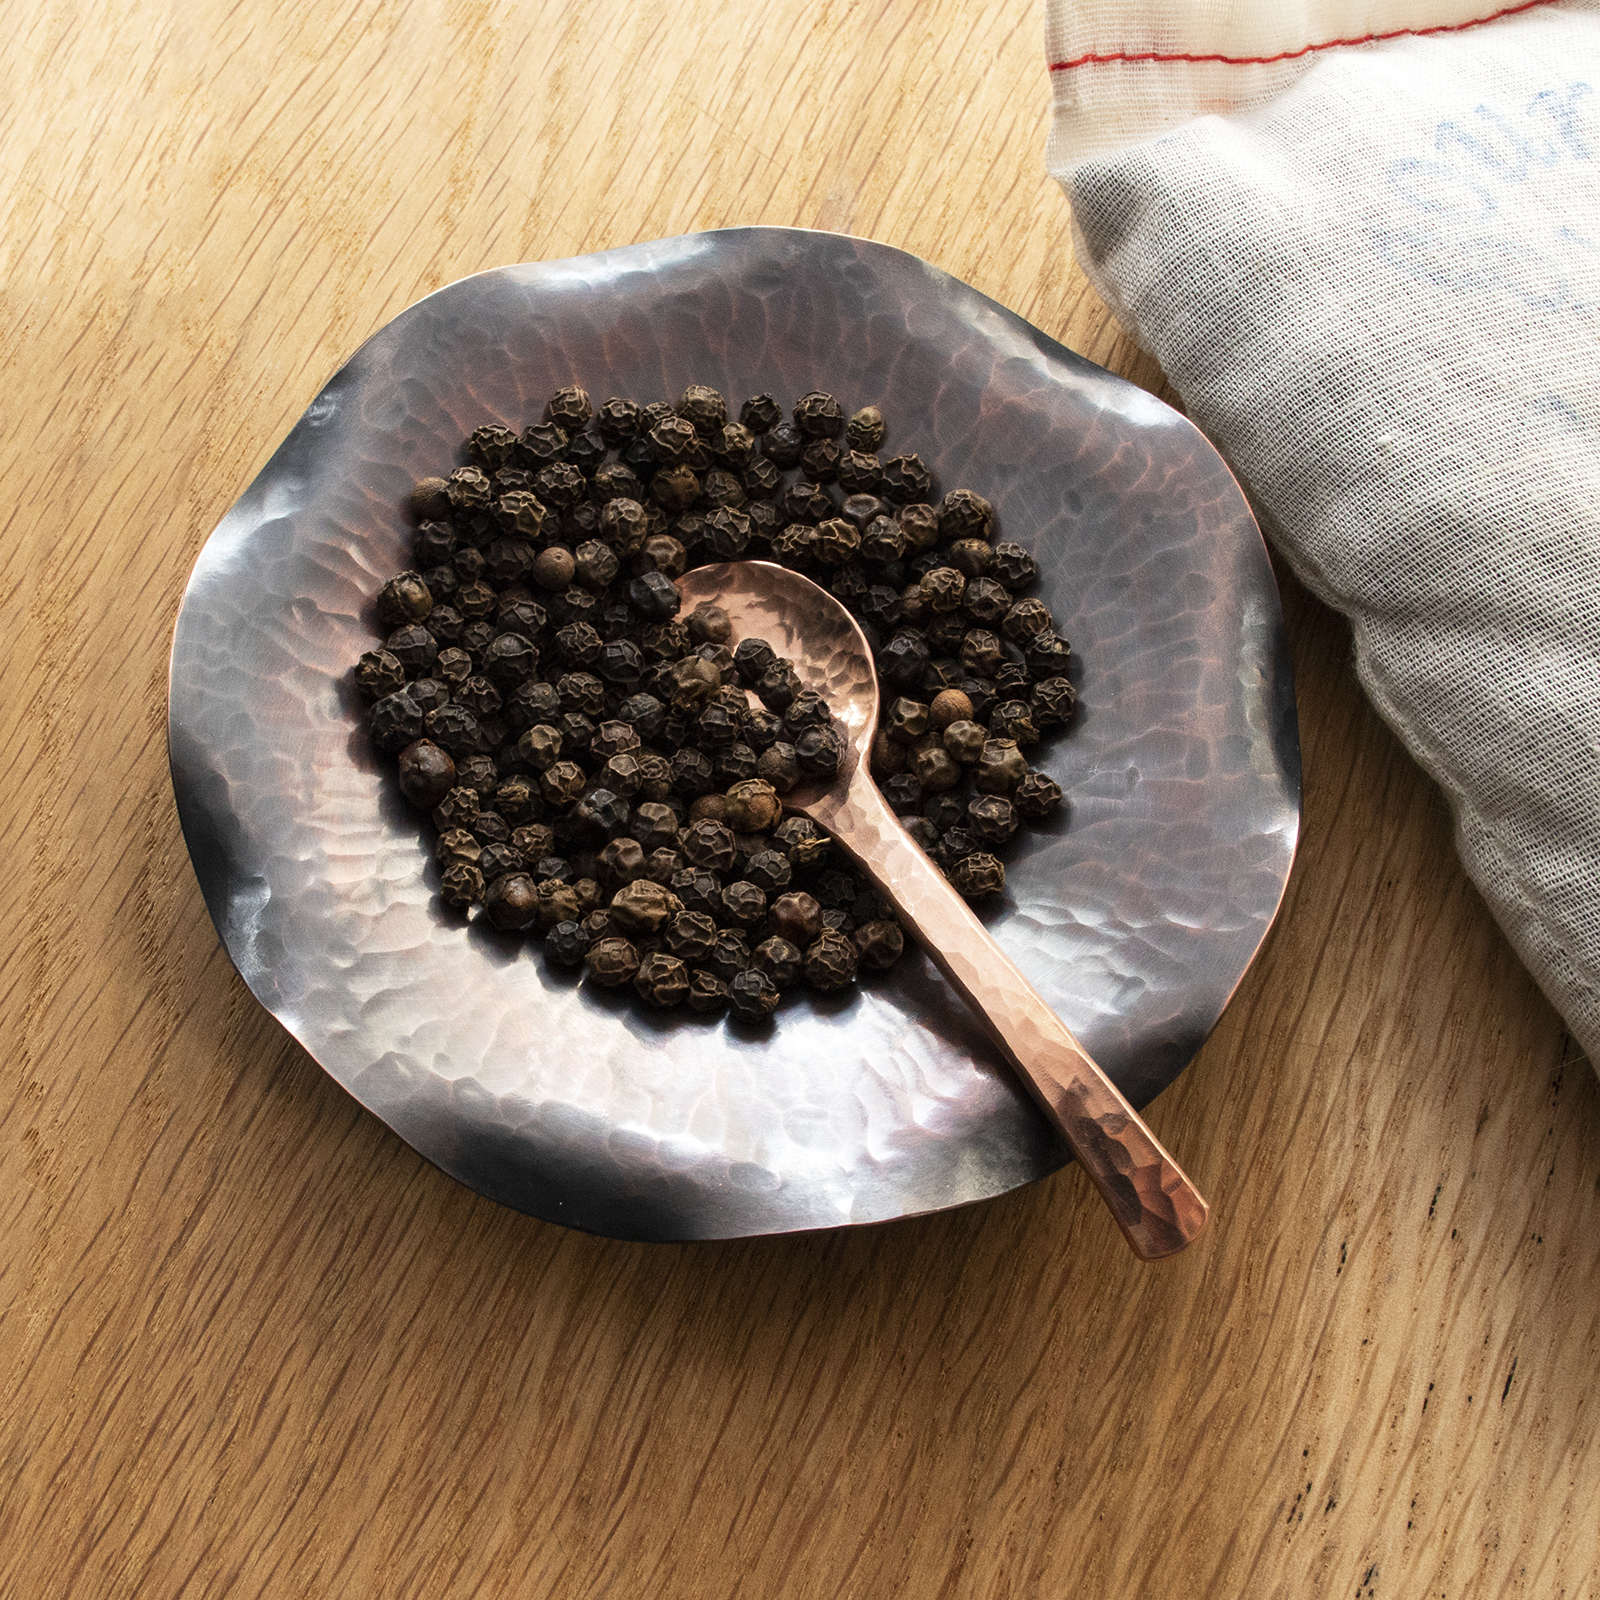 Salt spoon in dark dish with peppercorn